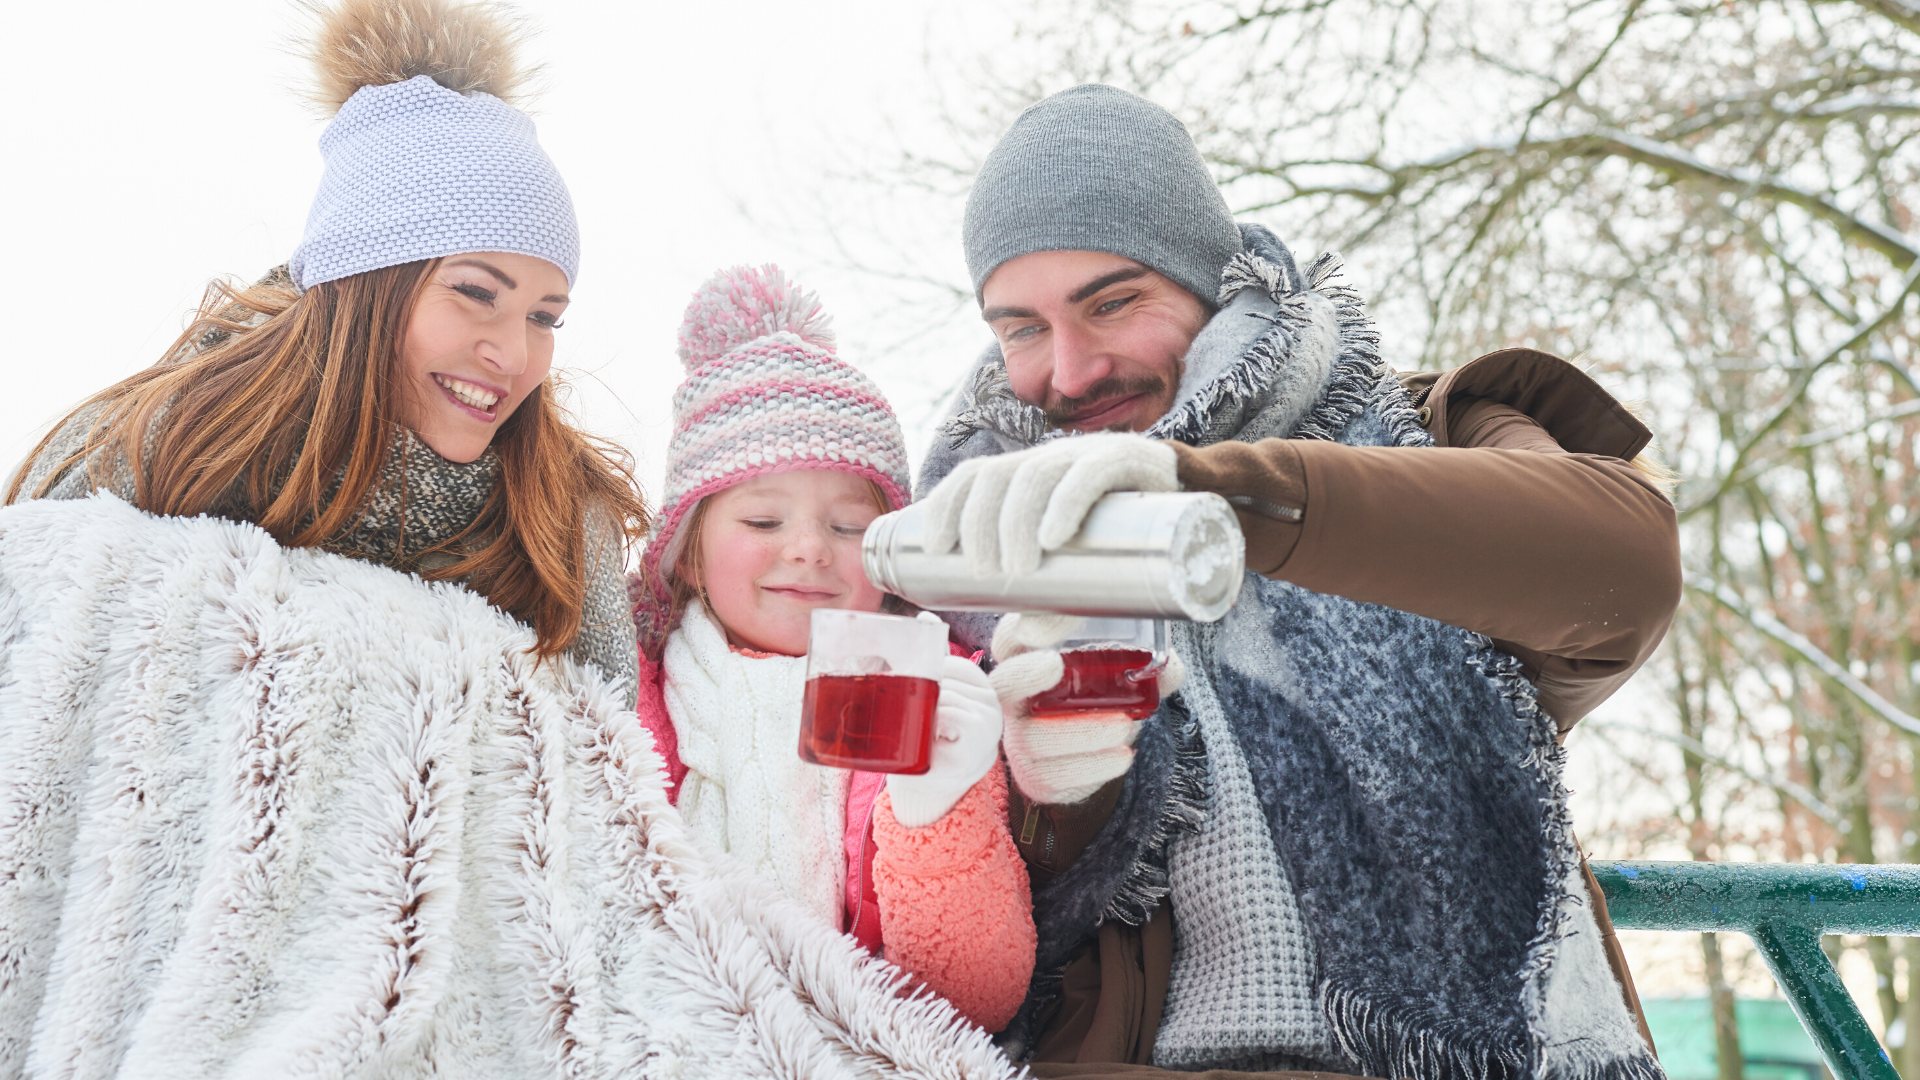 Winter Wellness For the Whole Family